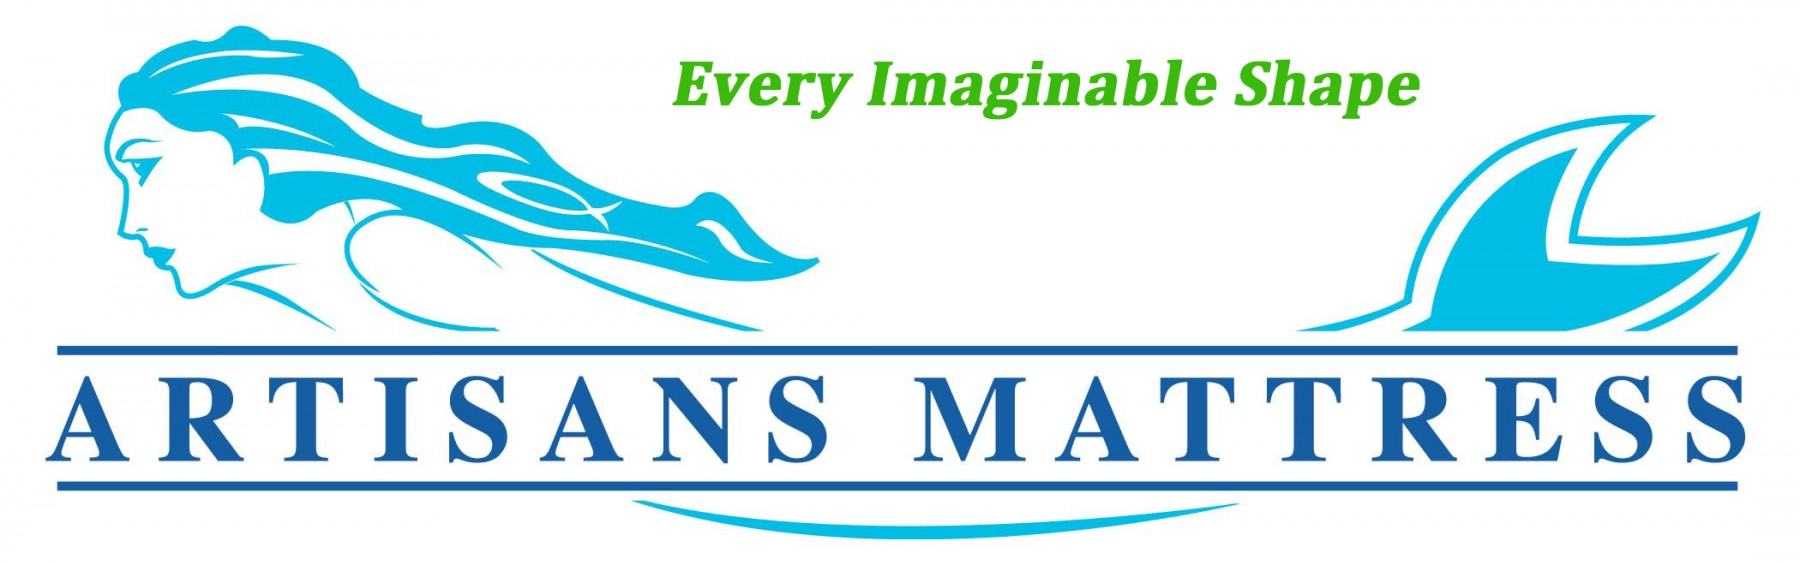 Custom Tempur-Pedic mattresses in Every Imaginable Shape